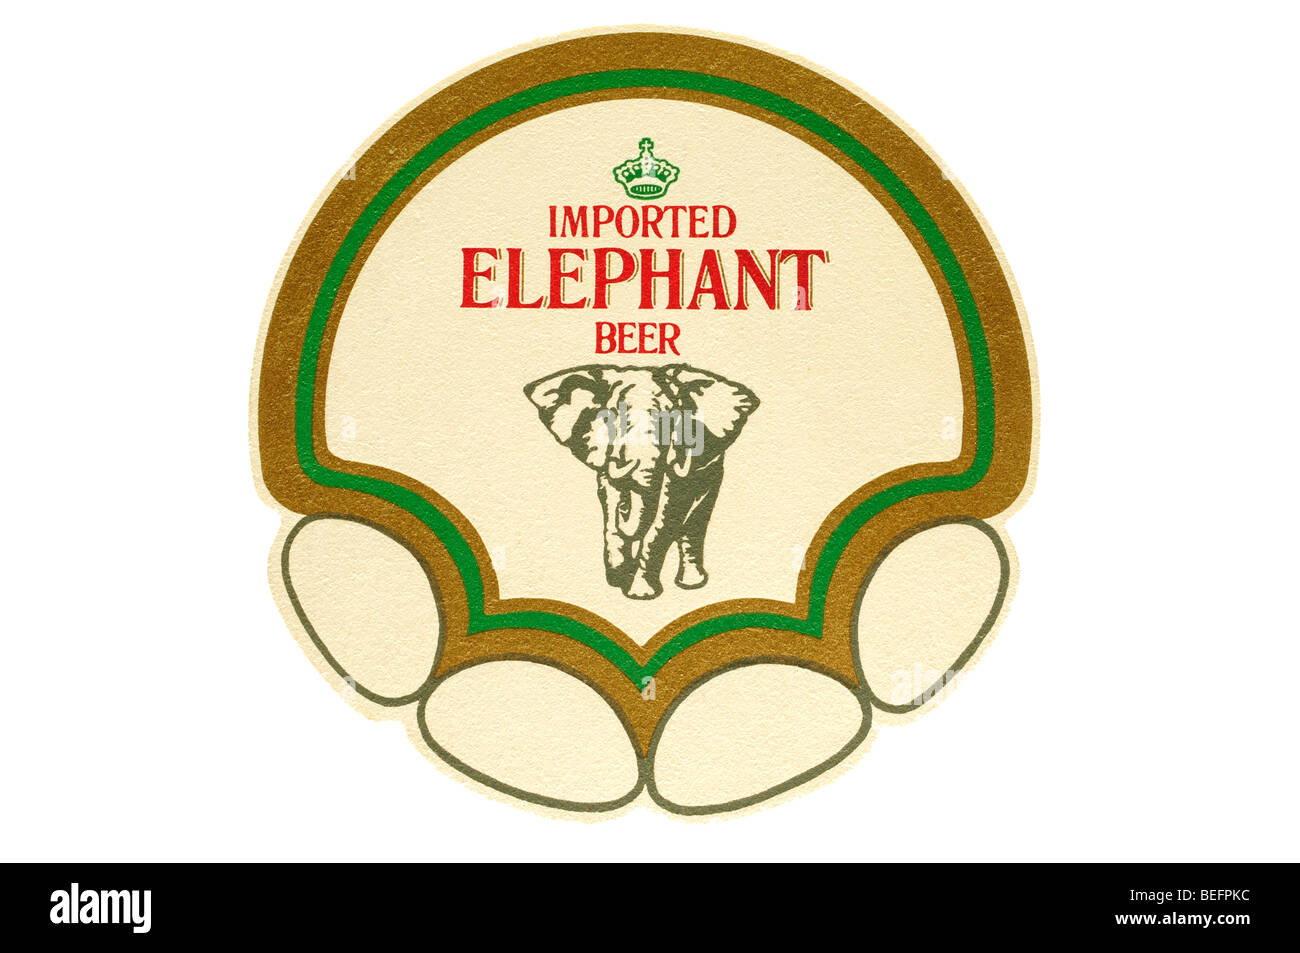 imported elephant beer - Stock Image